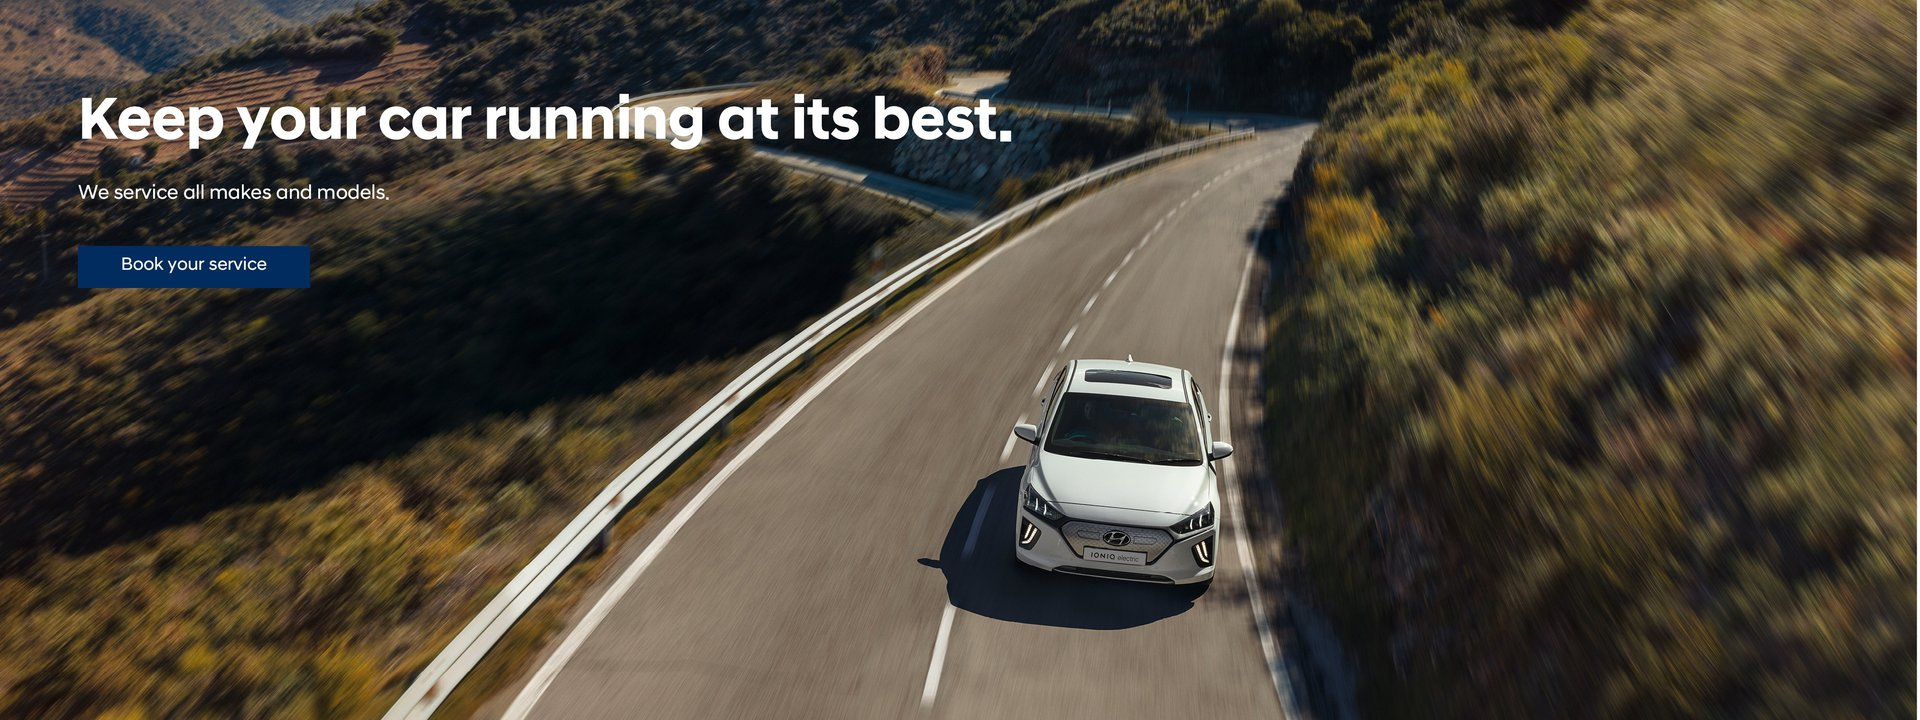 Hyundai car driving on a long and winding road through a green landscape